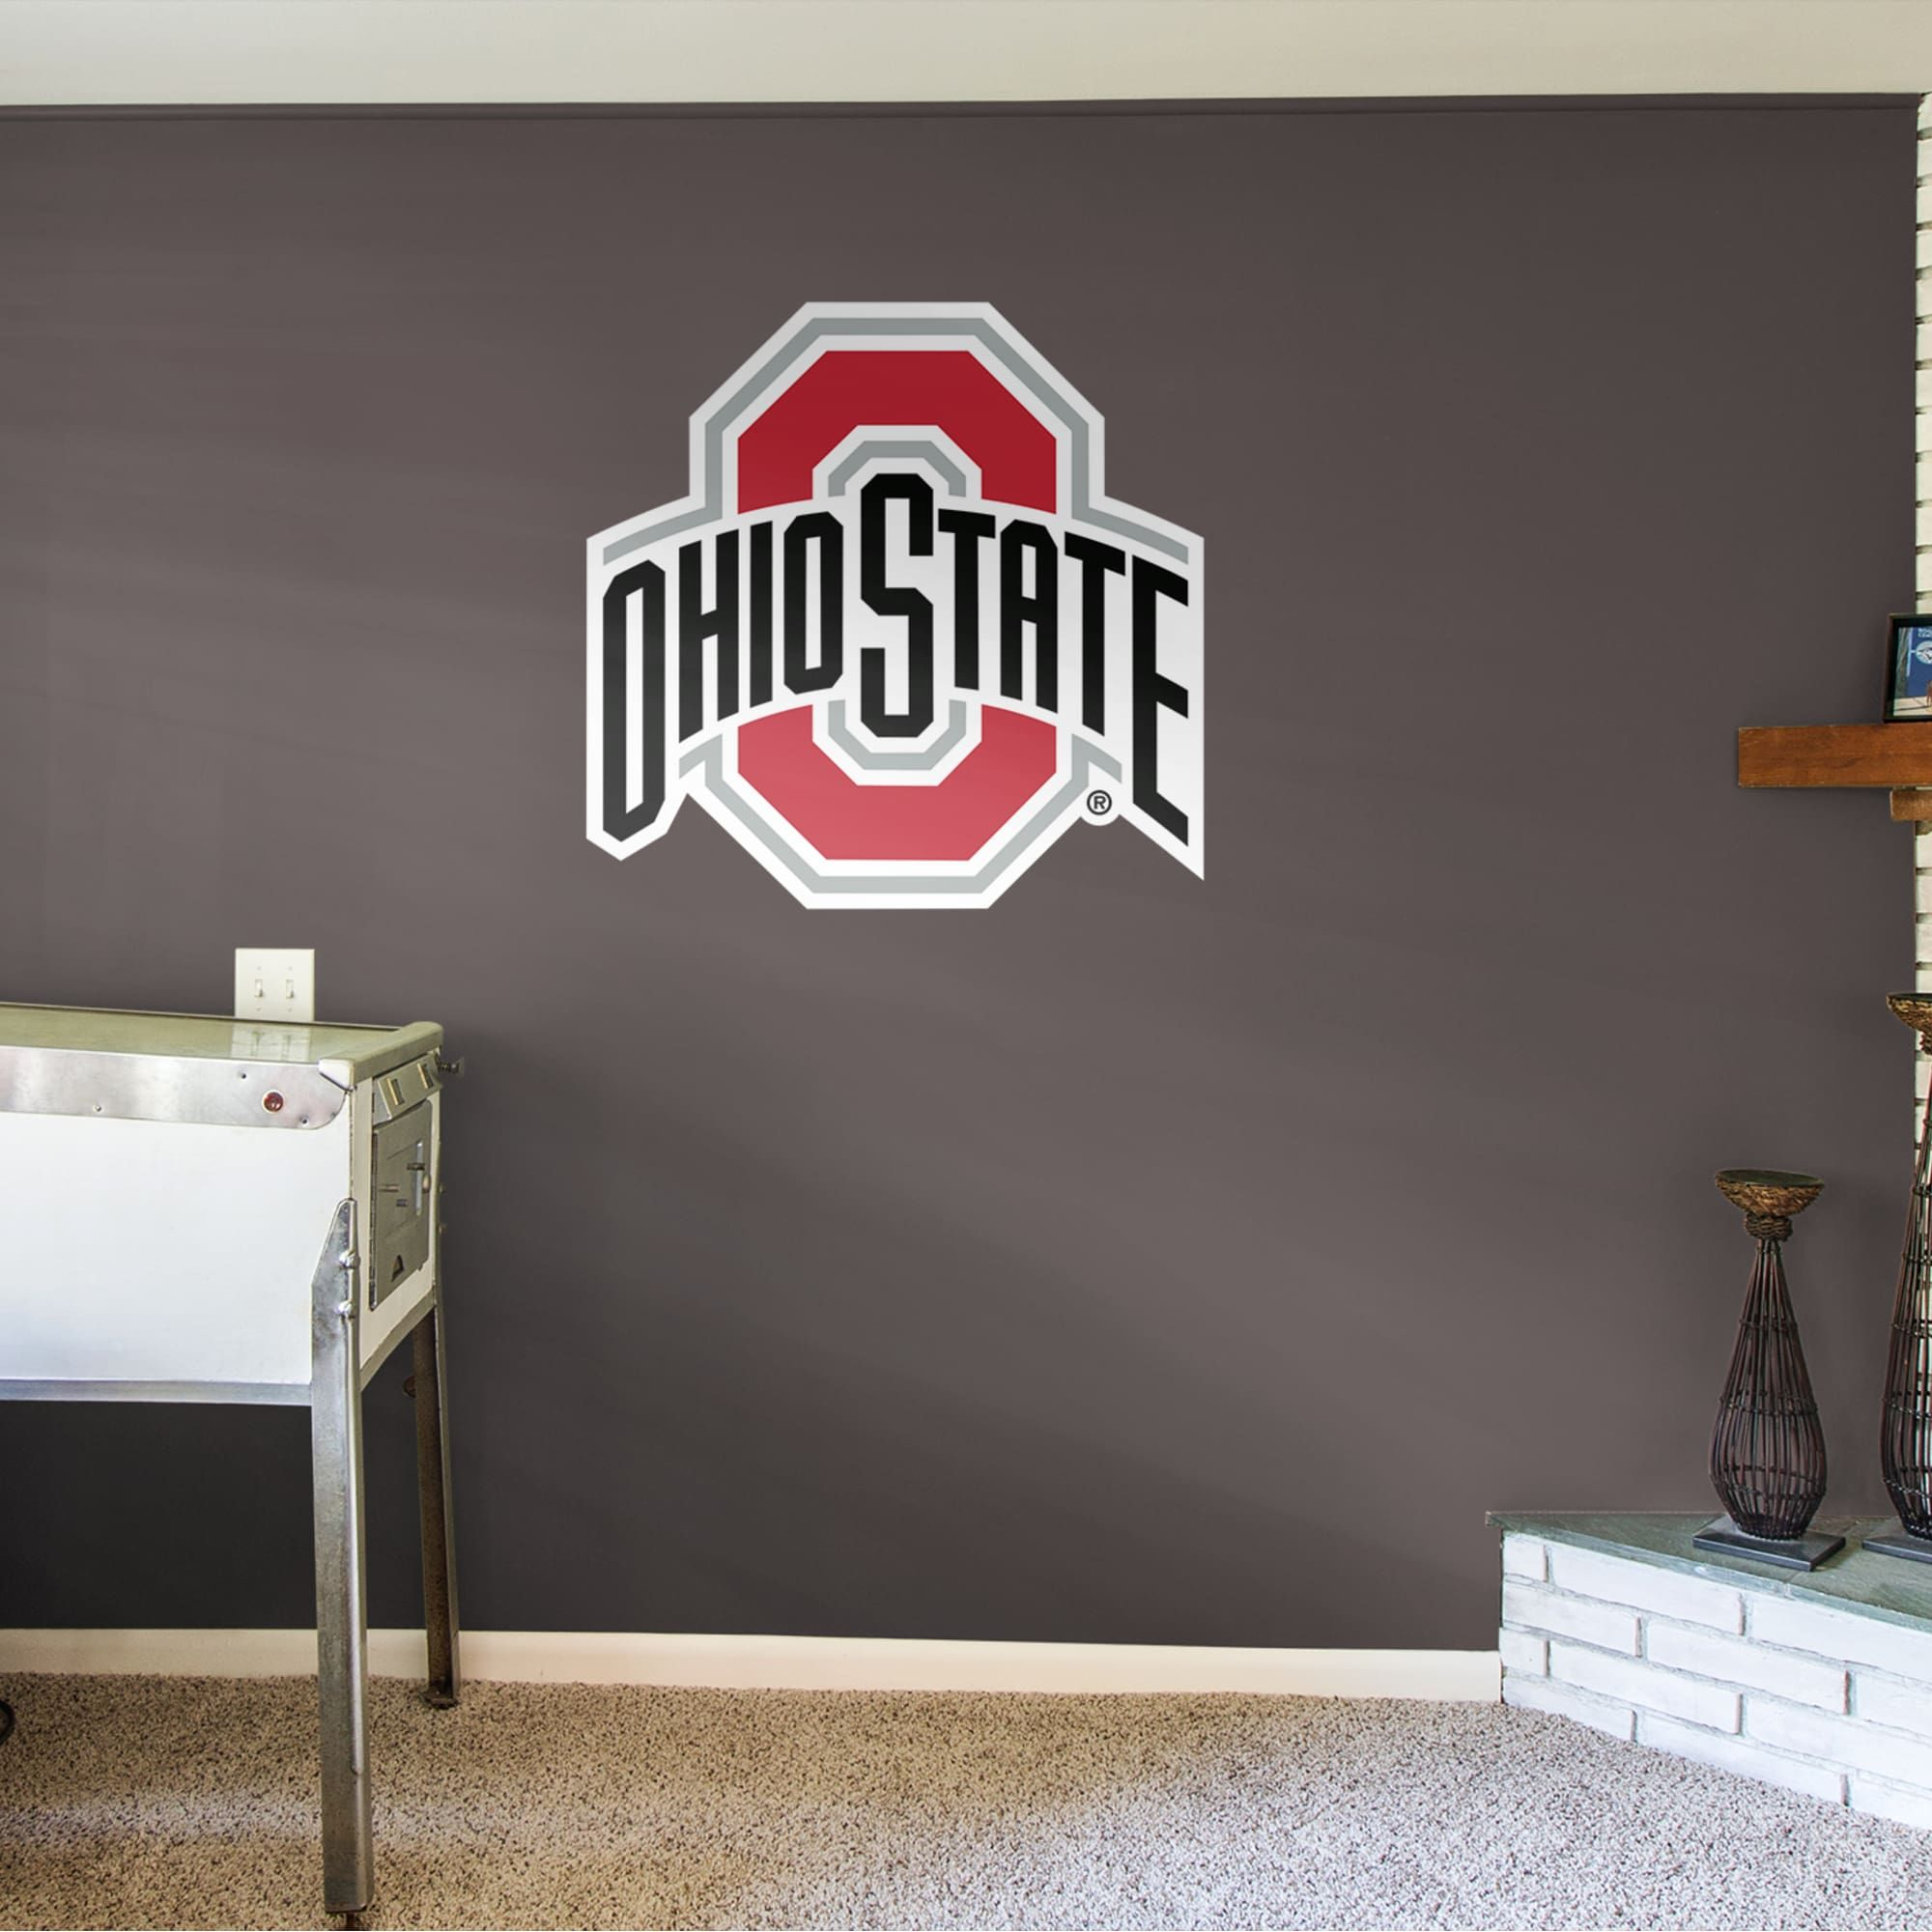 Ohio State Buckeyes Logo Giant Officially Licensed Removable Wall Decal Ohio State Rooms Ohio State Bedroom Ohio State Decor